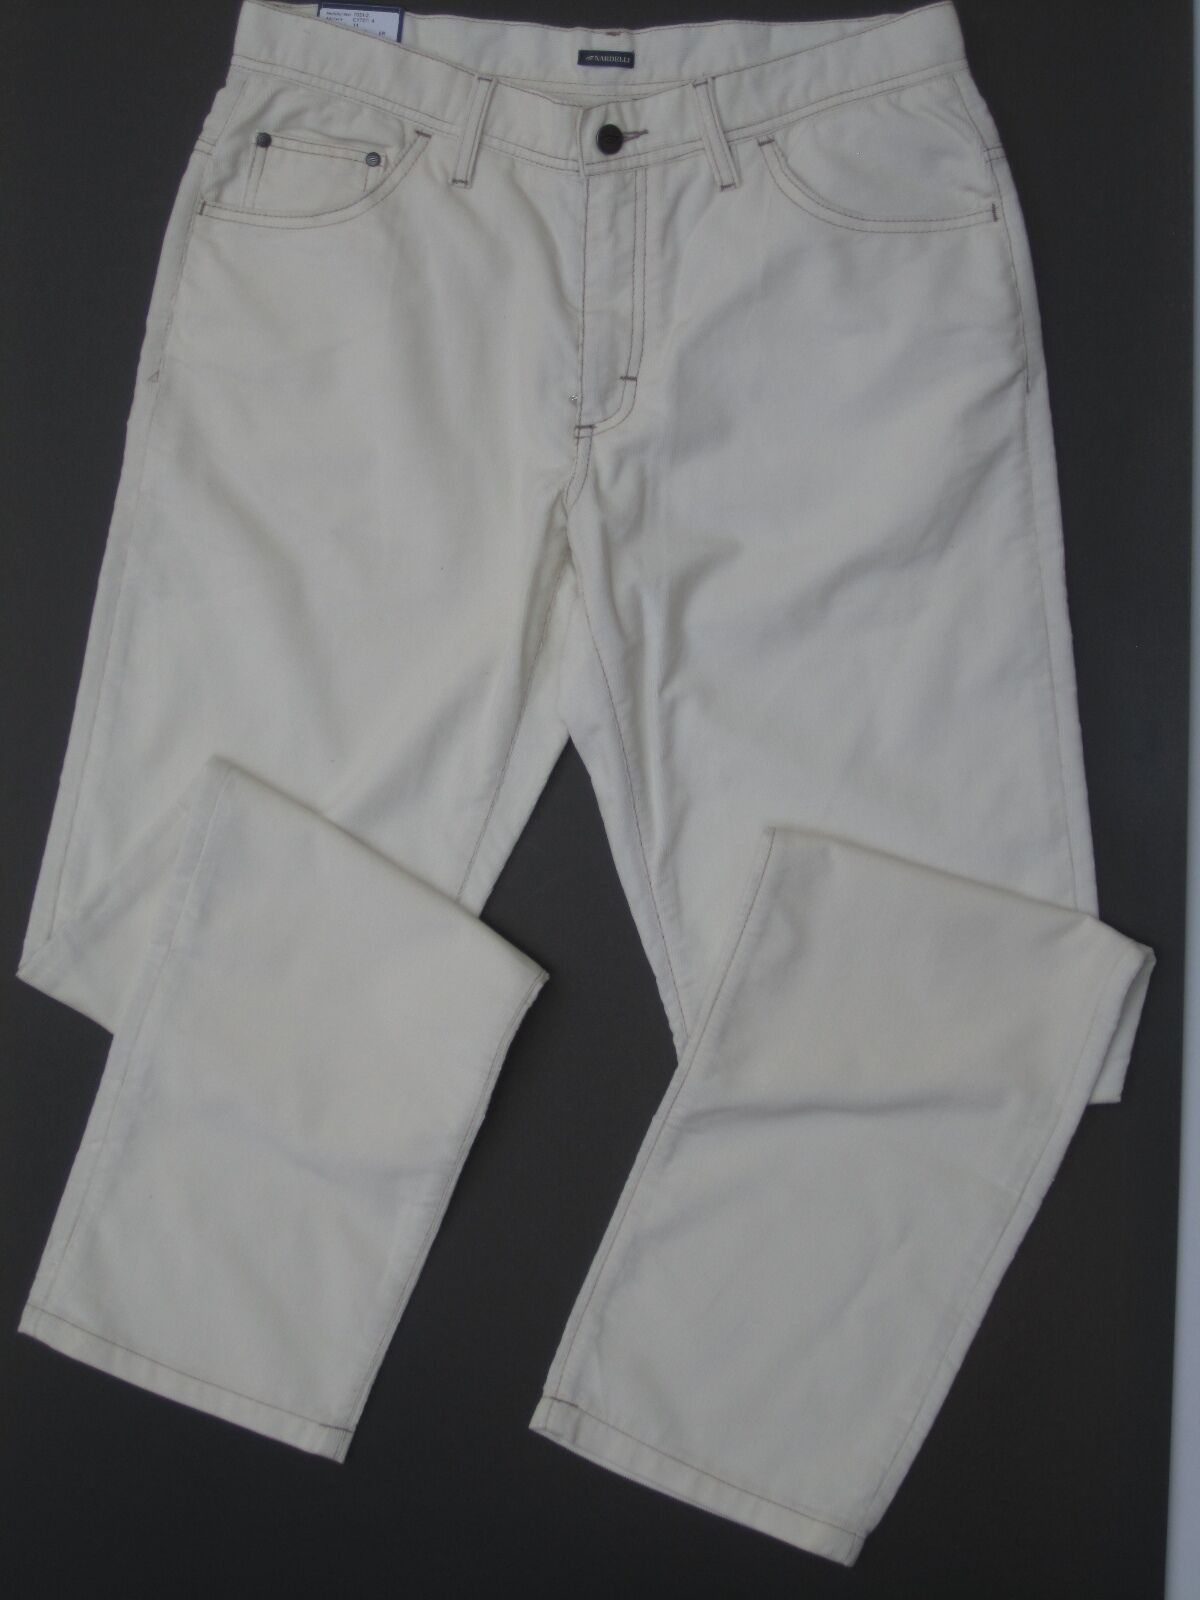 NARDELLI  OFF WHITE CORDUROY COTTON JEANS PANTS 50 34 NWT factory of CUCINELLI